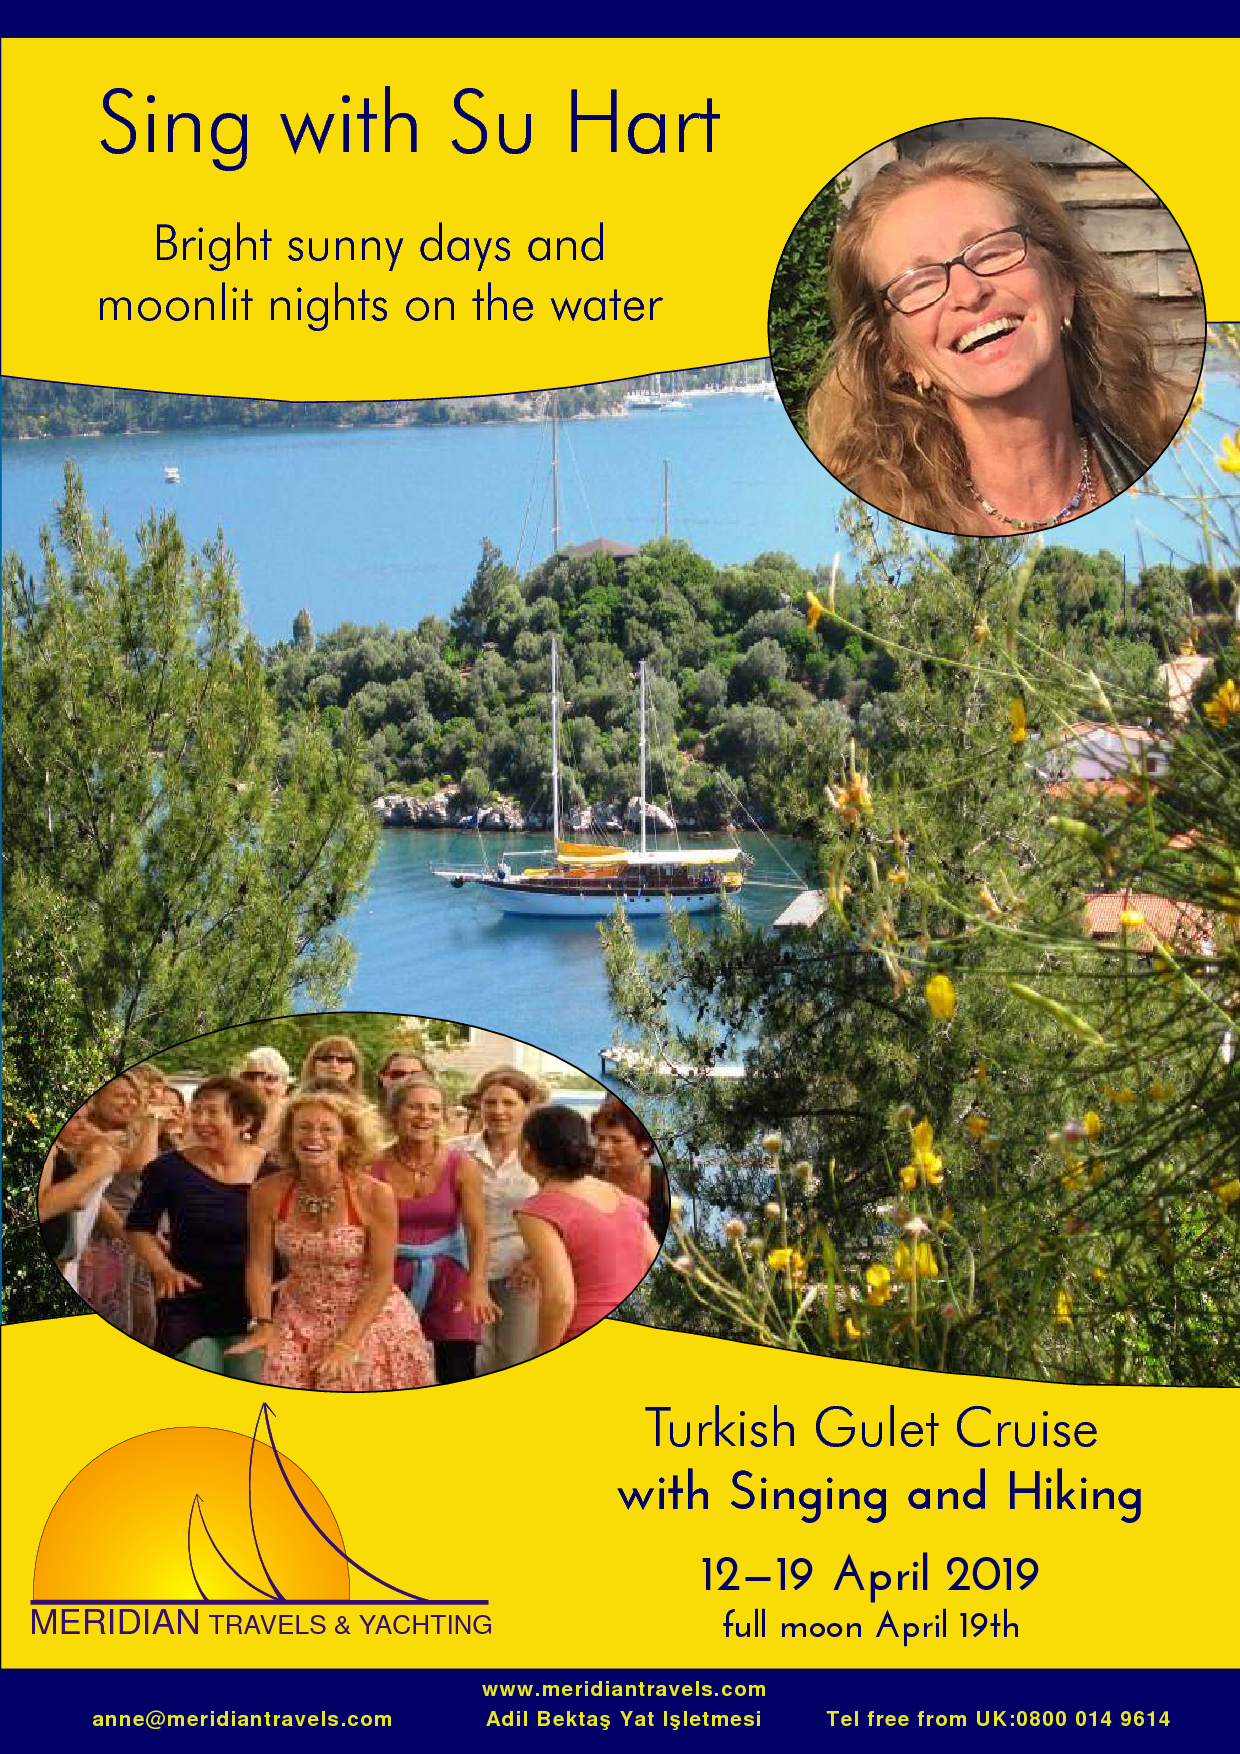 Su Hart Gulet Cruise April 2019